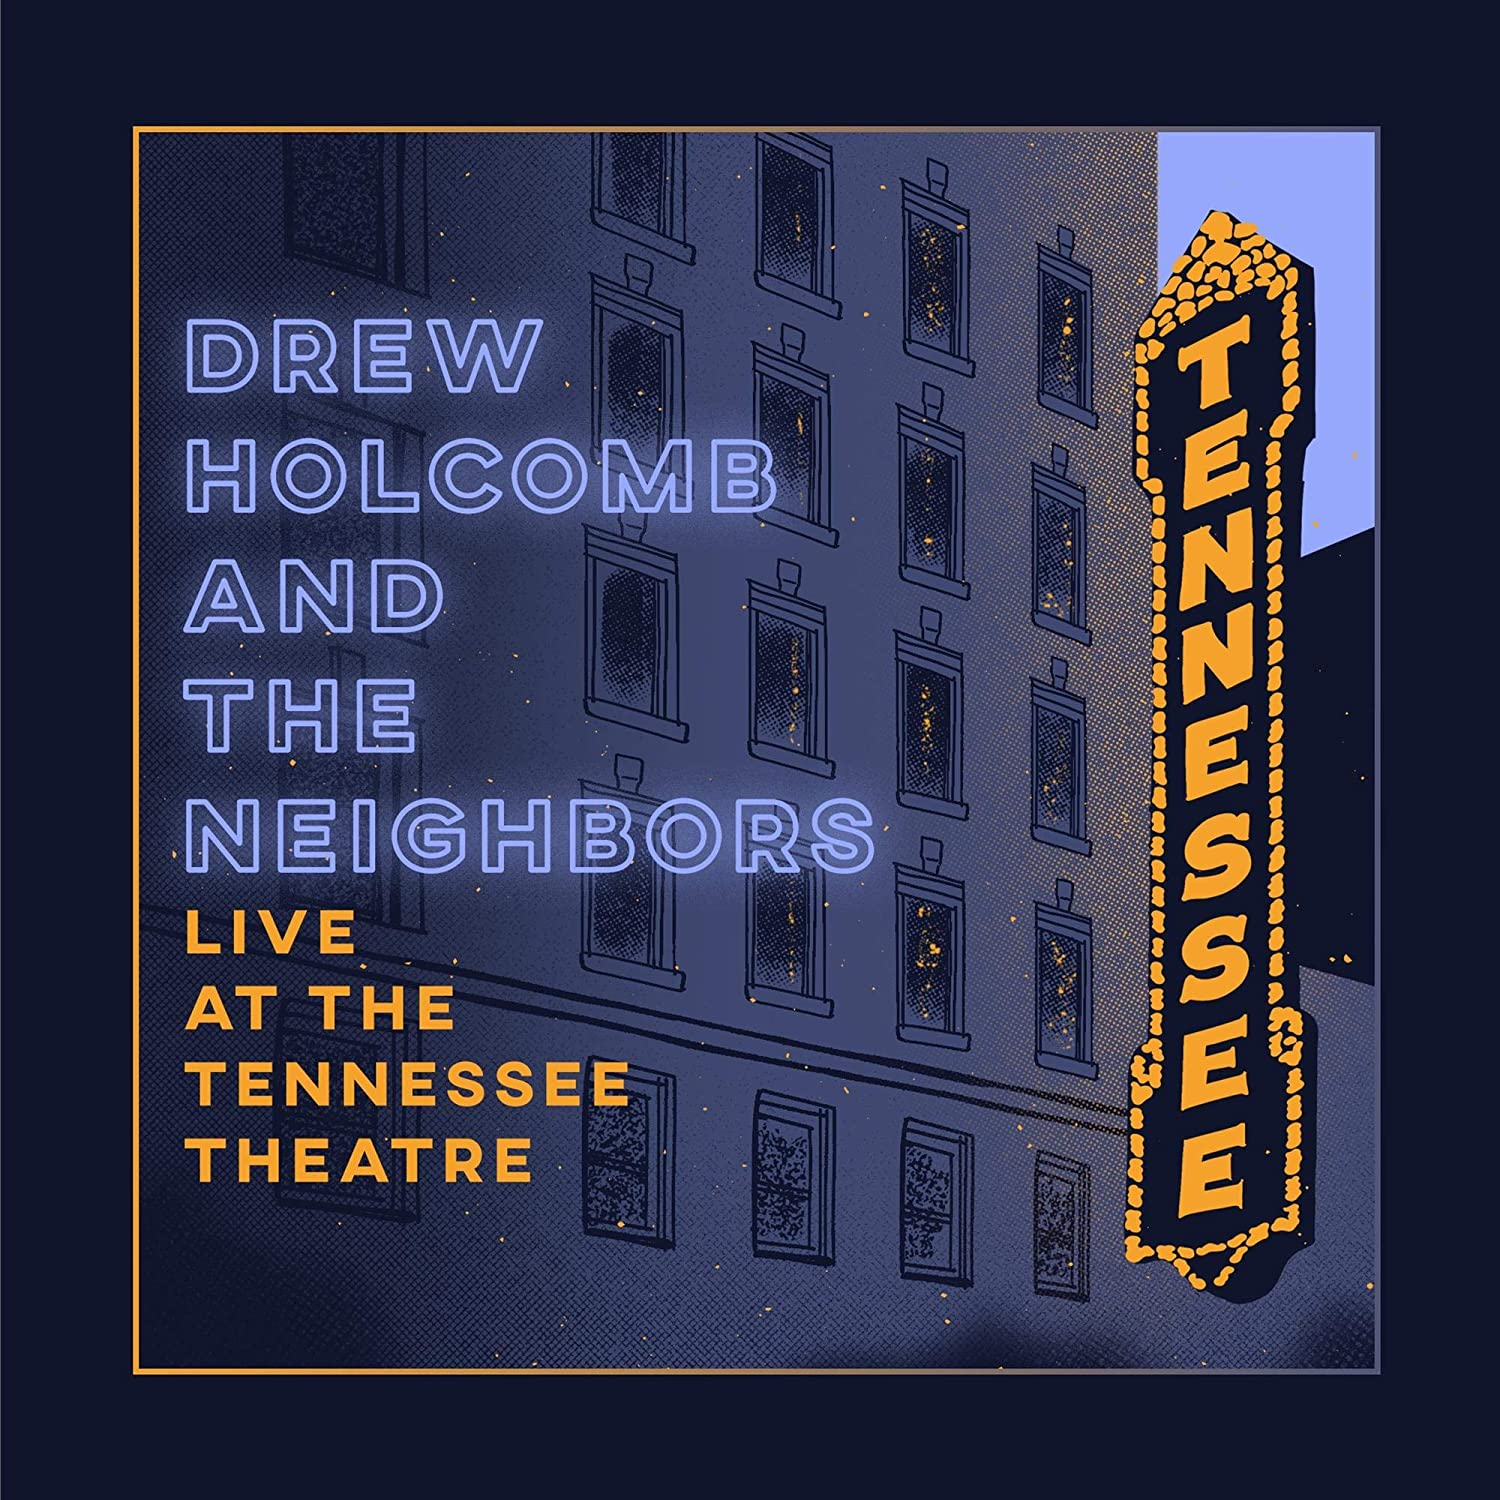 Drew Holcomb & The Neighbors - Live At The Tennessee Theatre [2LP]